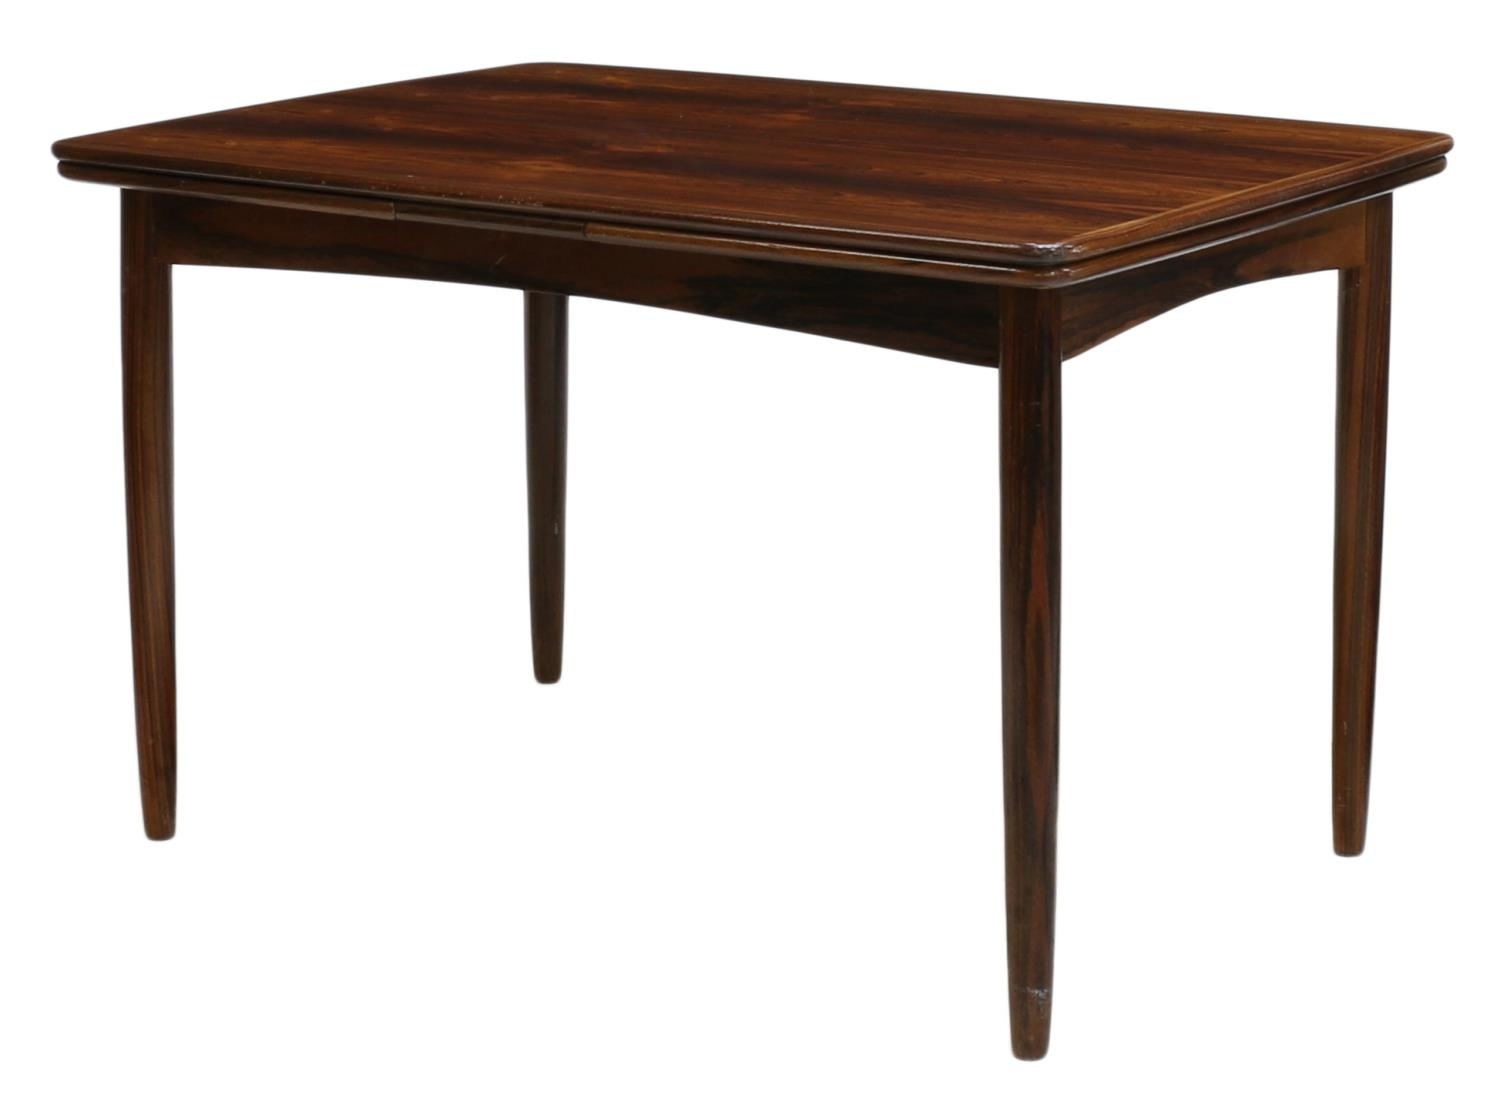 DANISH MID CENTURY MODERN ROSEWOOD DINING TABLE JUNE MID  : 85 from www.austinauction.com size 1500 x 1111 jpeg 65kB